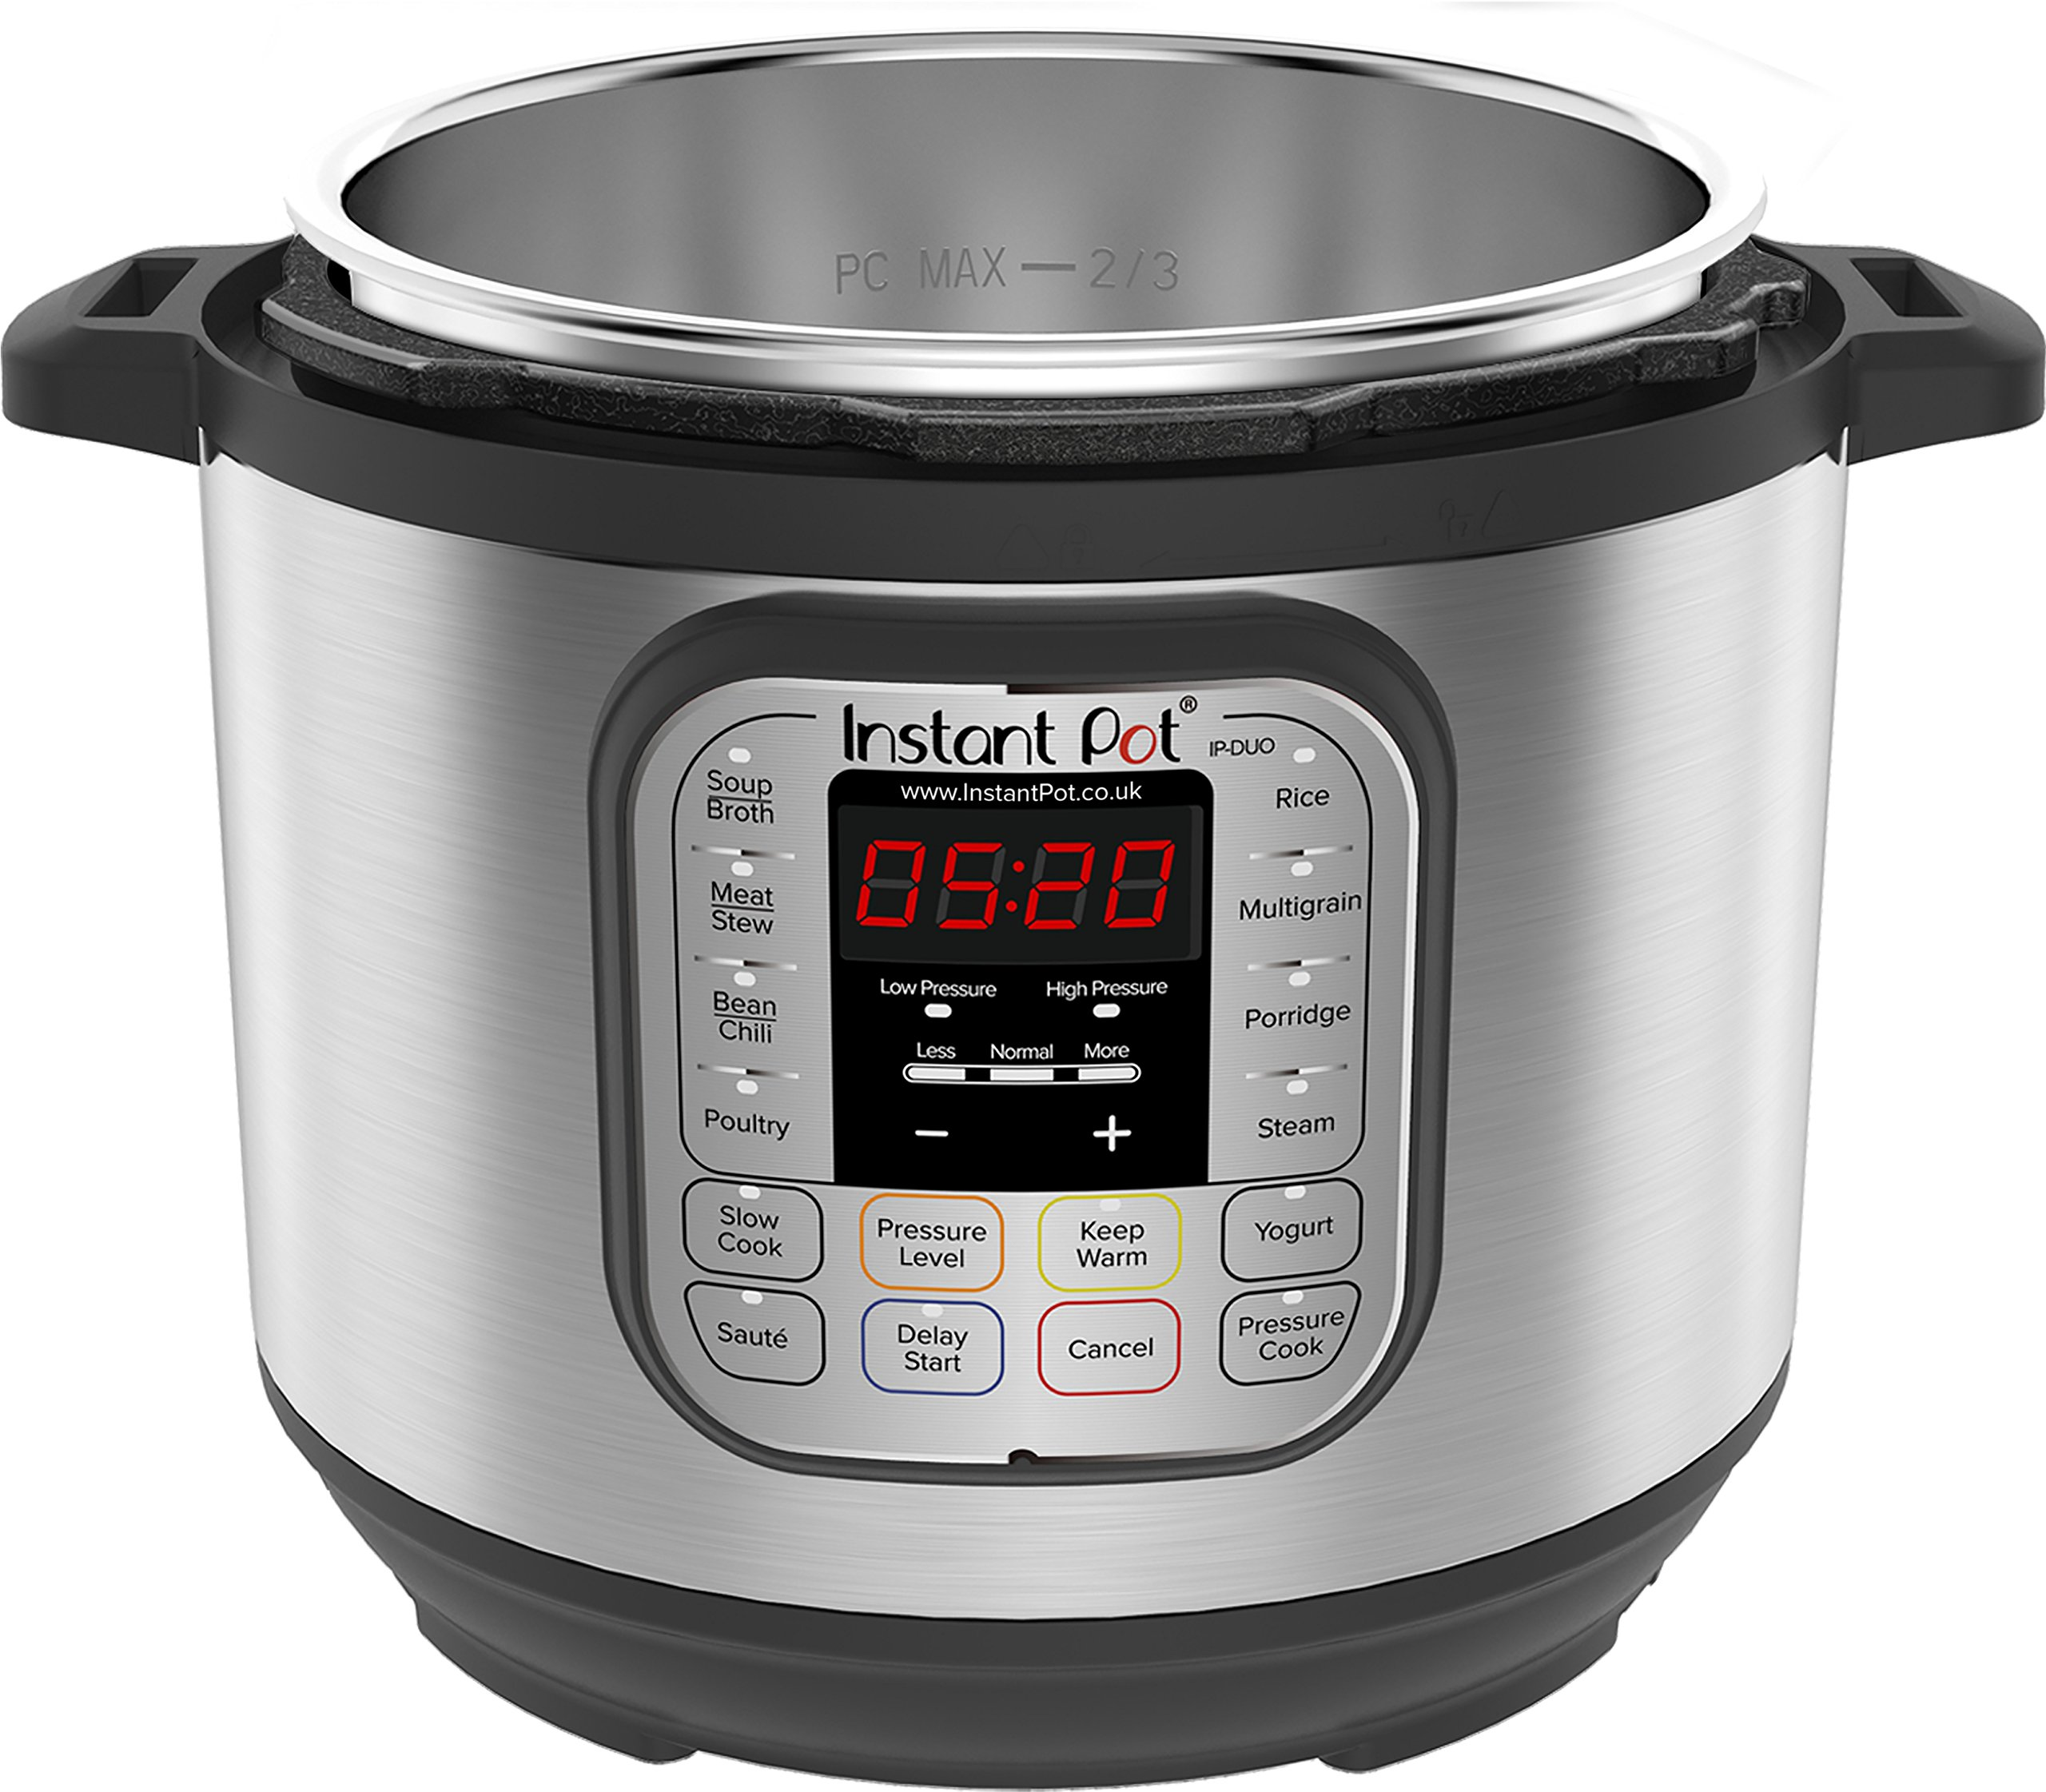 811LY4AHWnL - Instant Pot Duo 7-in-1 Electric Pressure Cooker, 6 Qt, 5.7 Litre, 1000 W, Brushed Stainless Steel/Black